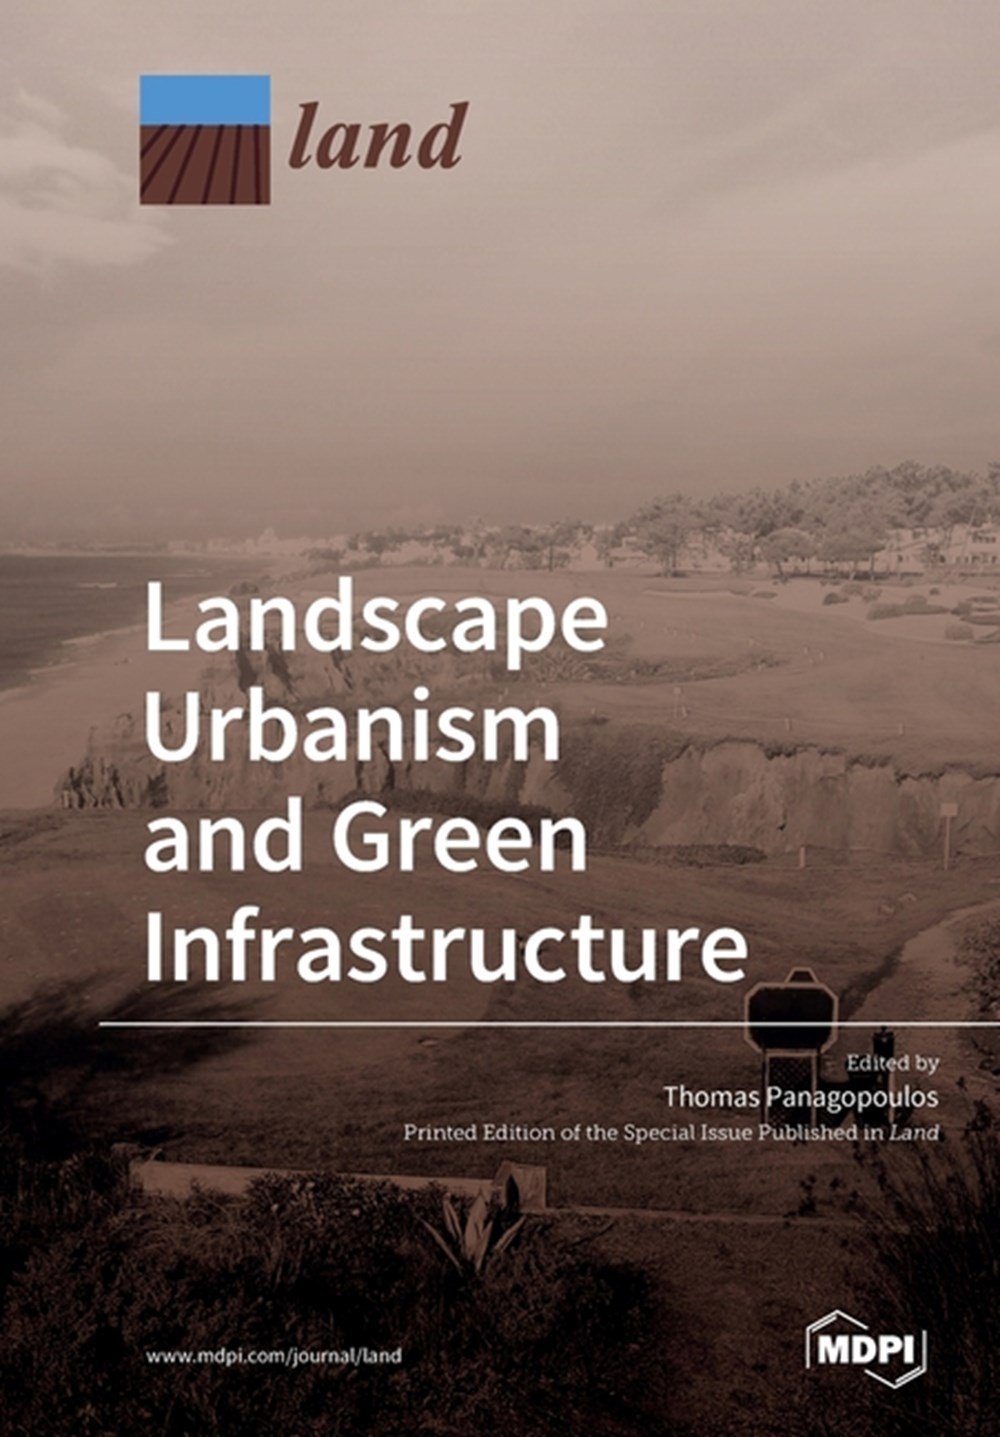 Landscape Urbanism and Green Infrastructure